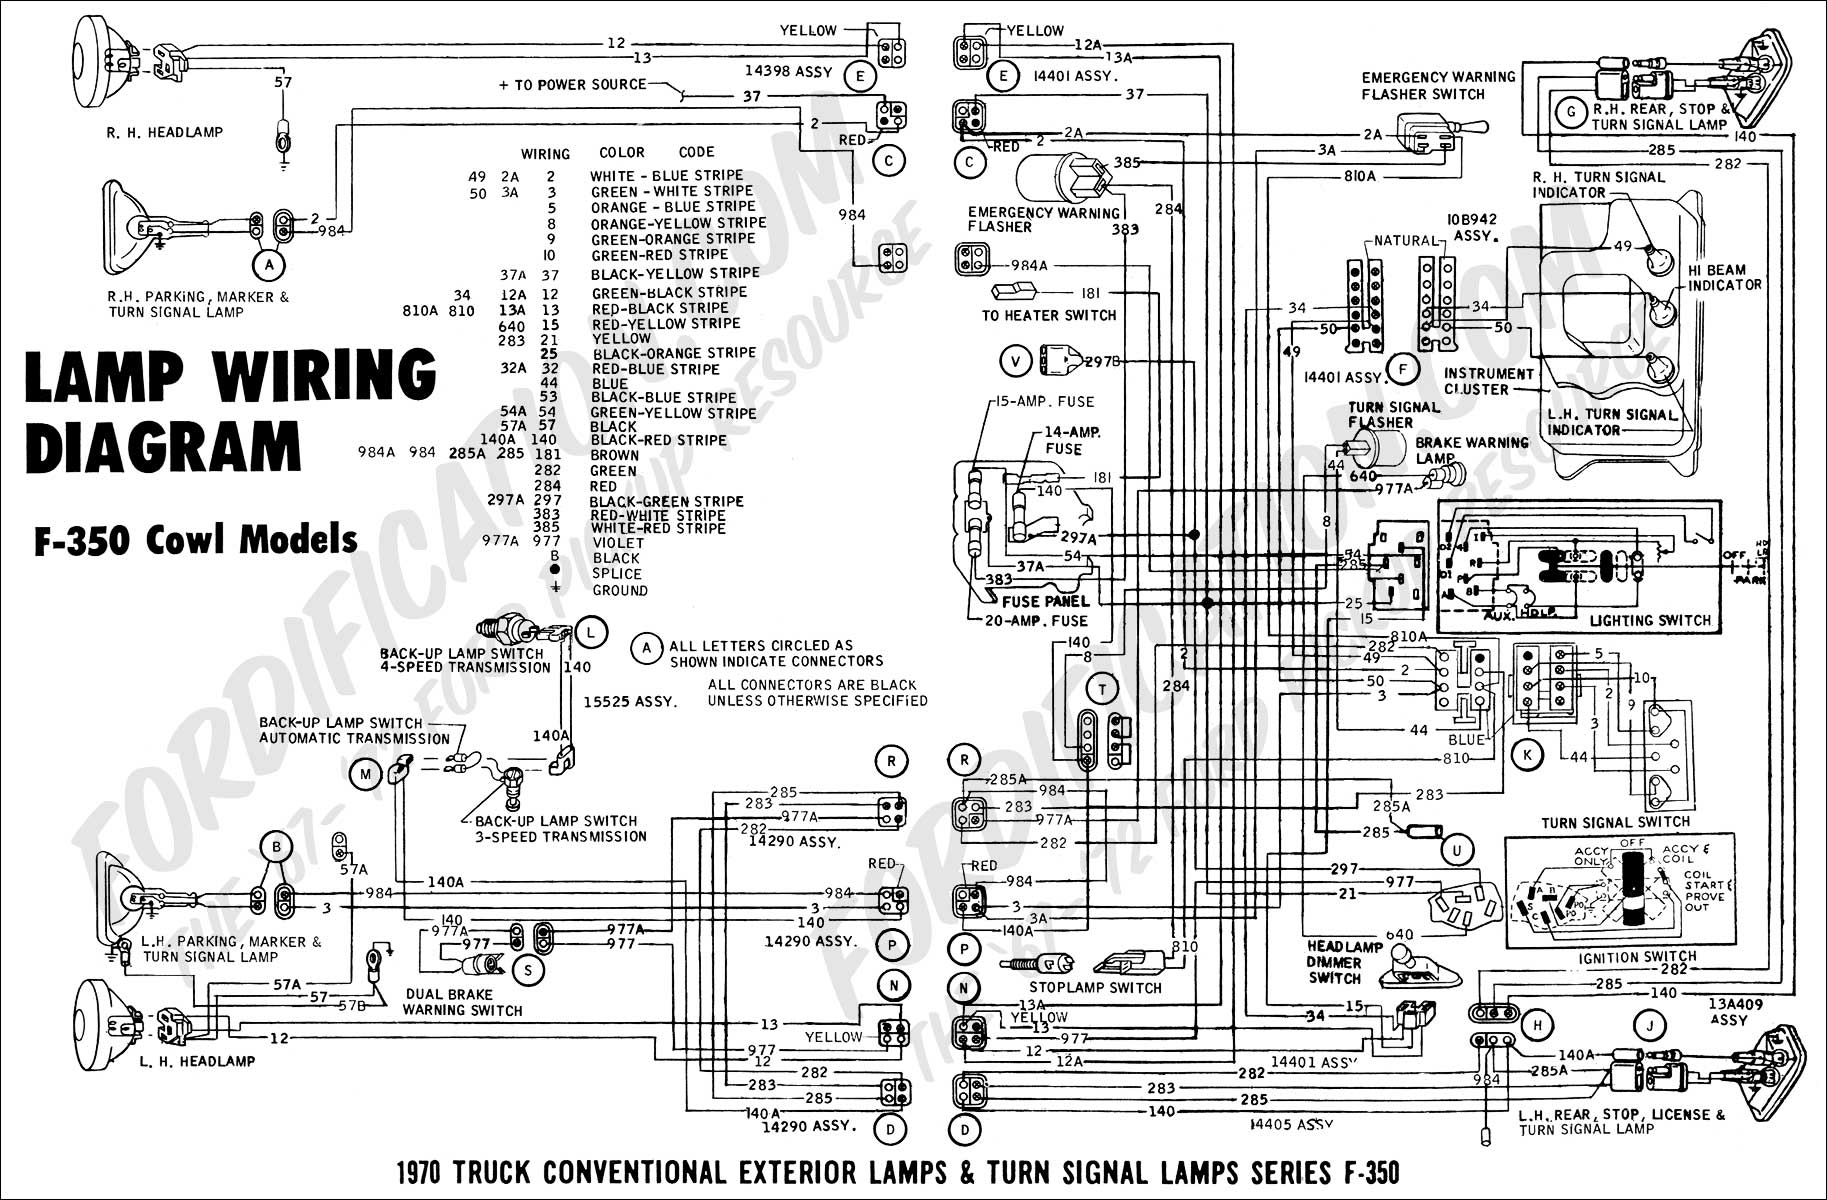 hight resolution of 97 ford f 350 headlight switch wiring diagram wiring diagrams scematic 2001 mustang stereo wiring diagram 97 mustang headlight switch wiring diagram